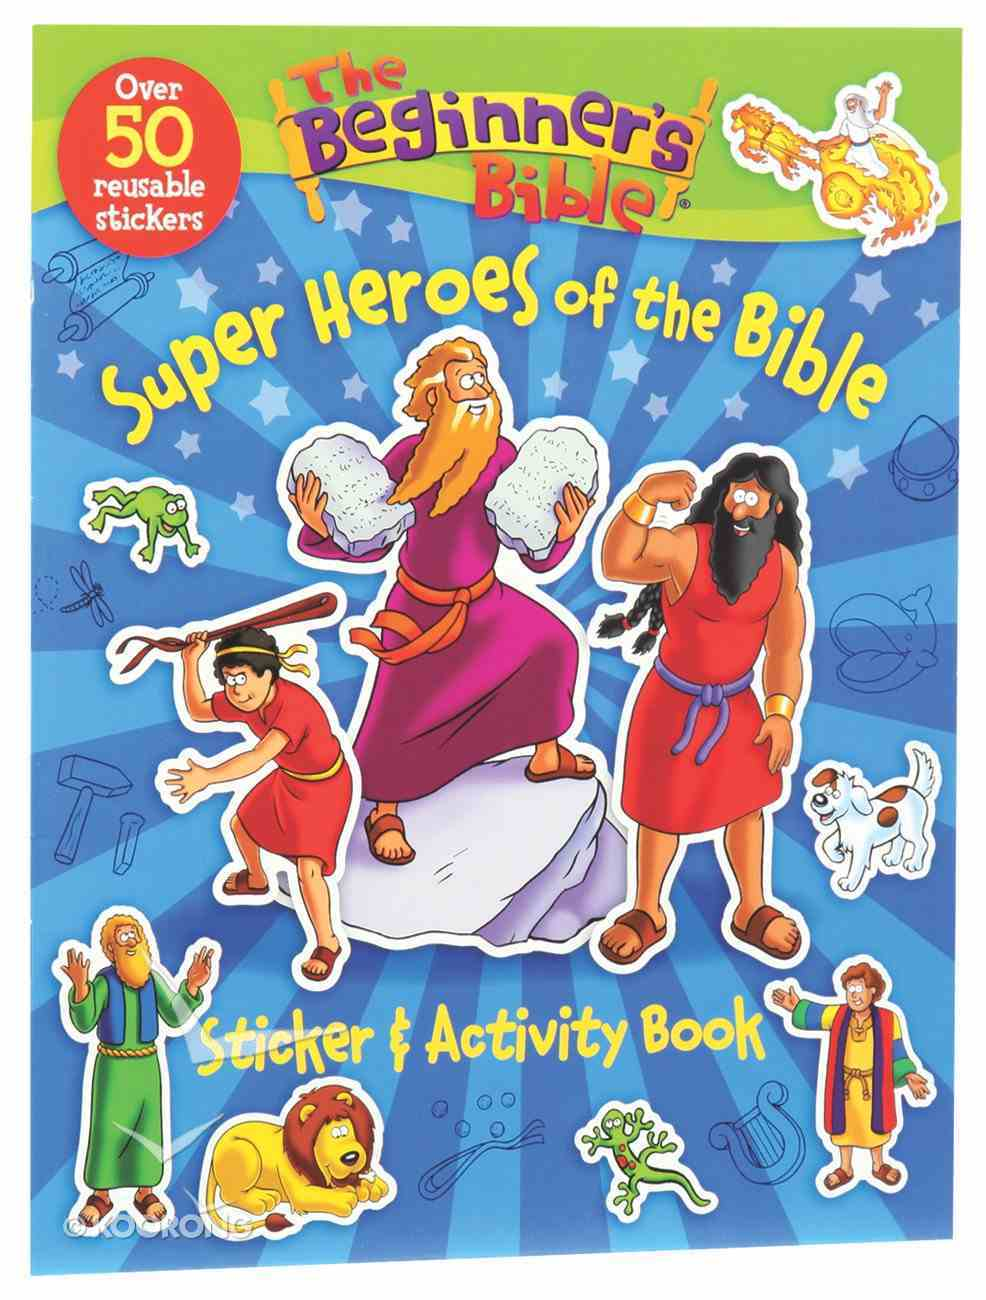 Beginner's Bible: A Super Heroes of the Bible Sticker and Activity Book Paperback